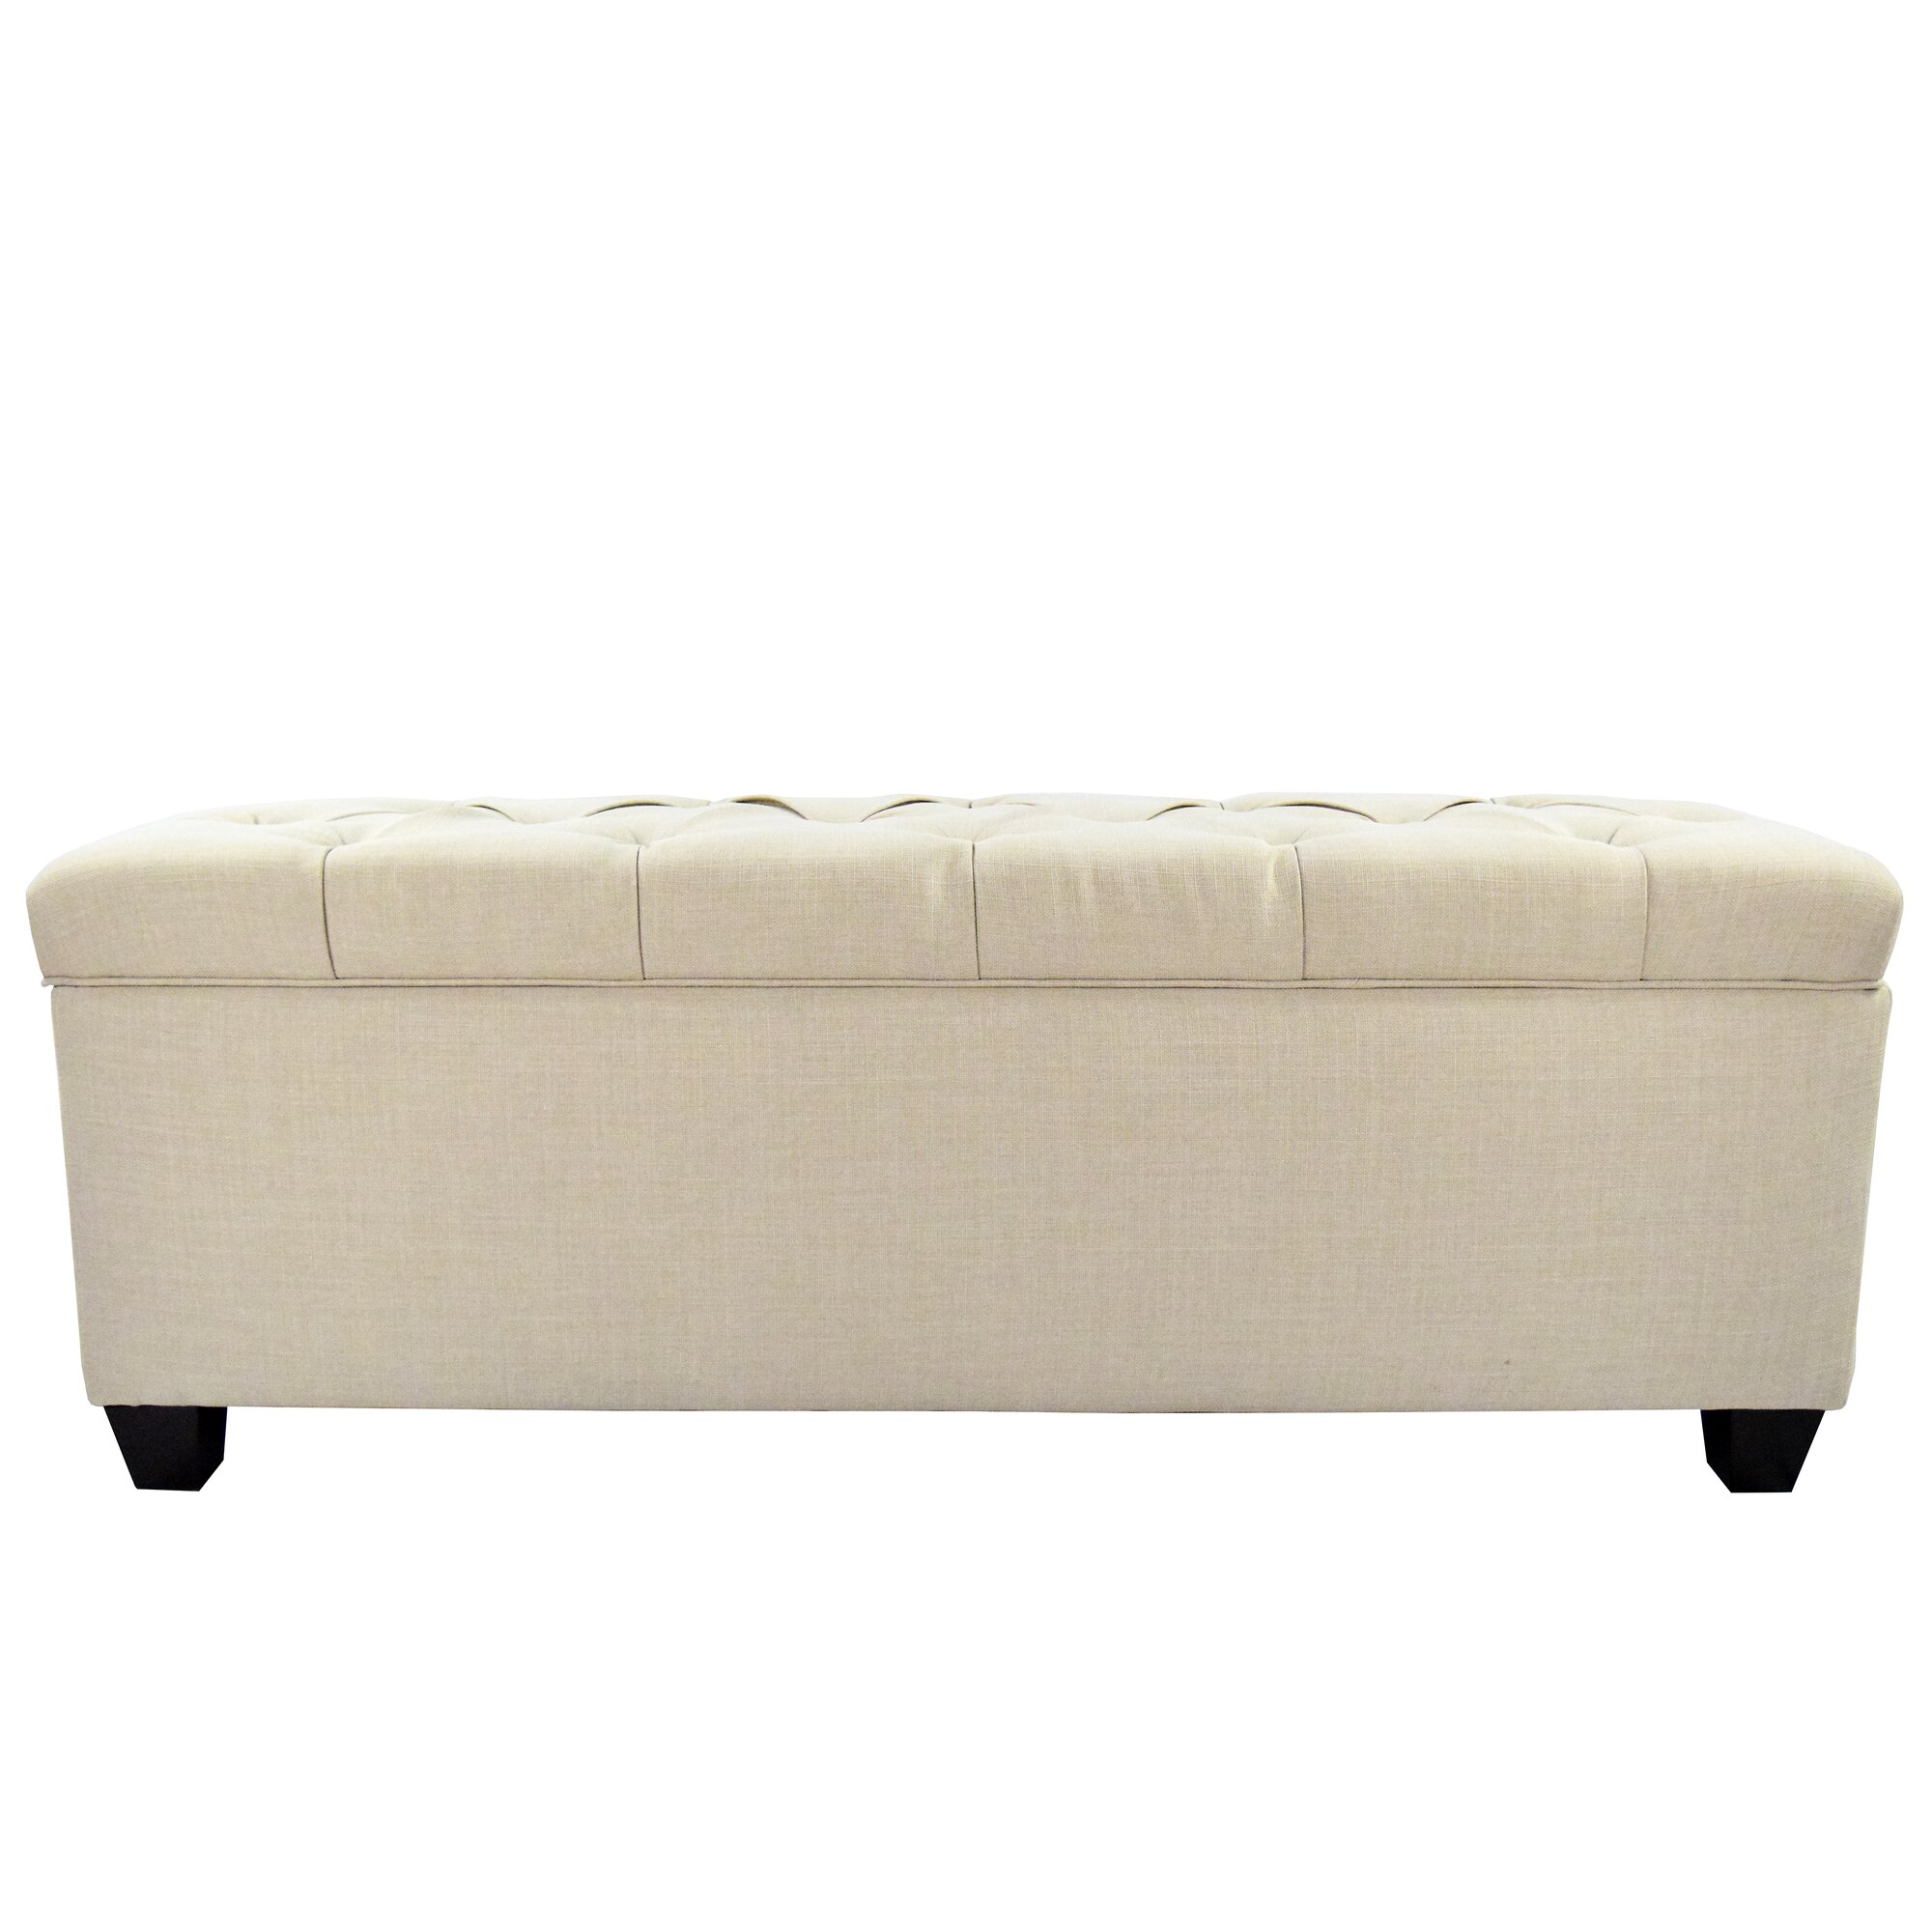 Bedroom benches with storage - Fabric Storage Bedroom Bench